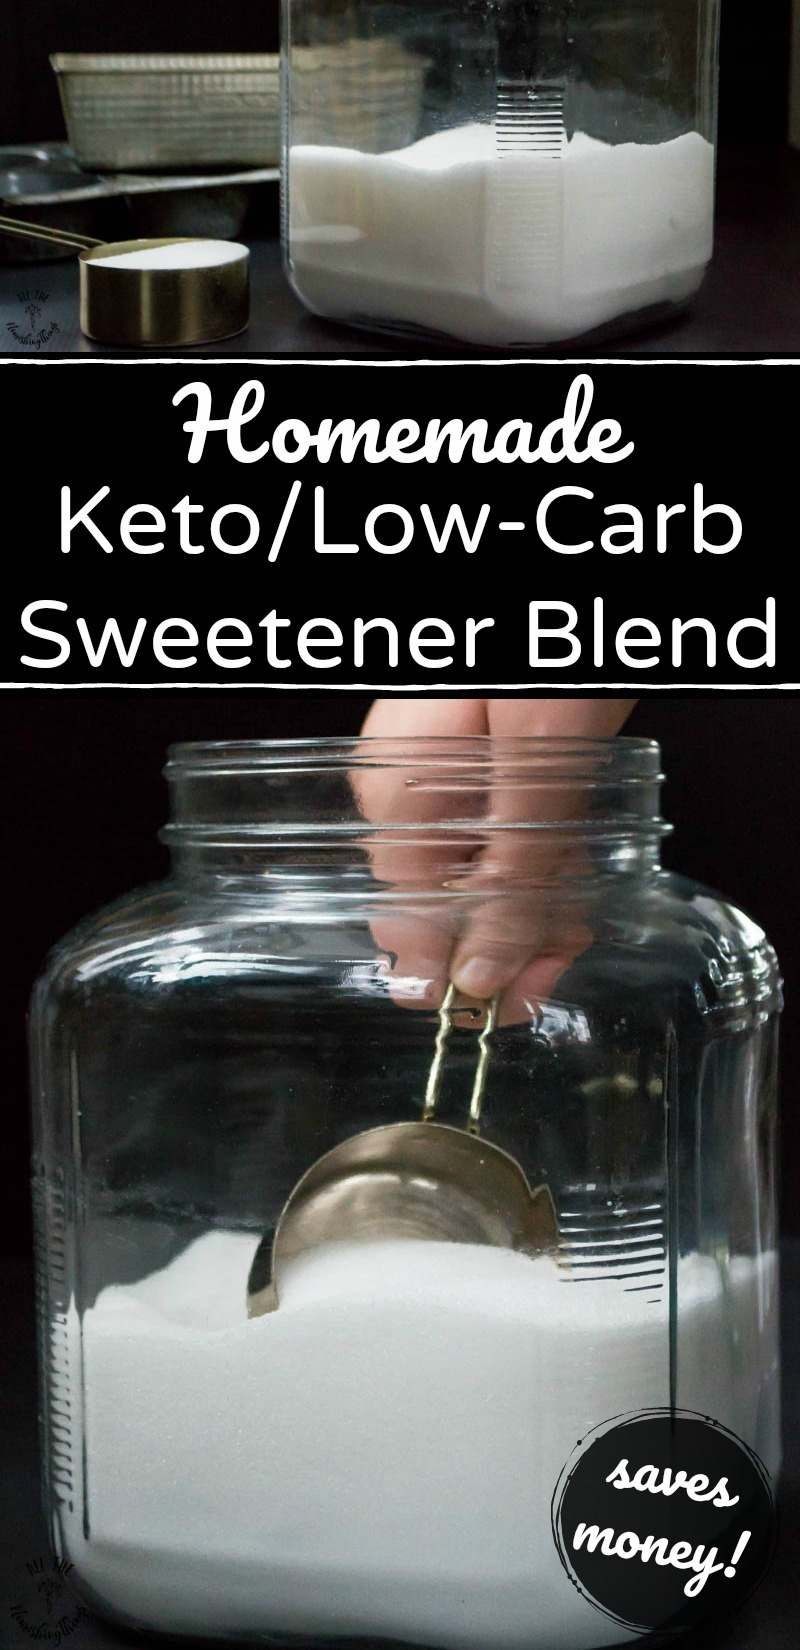 collage of 2 images of homemade keto sweetener blend with text overlay